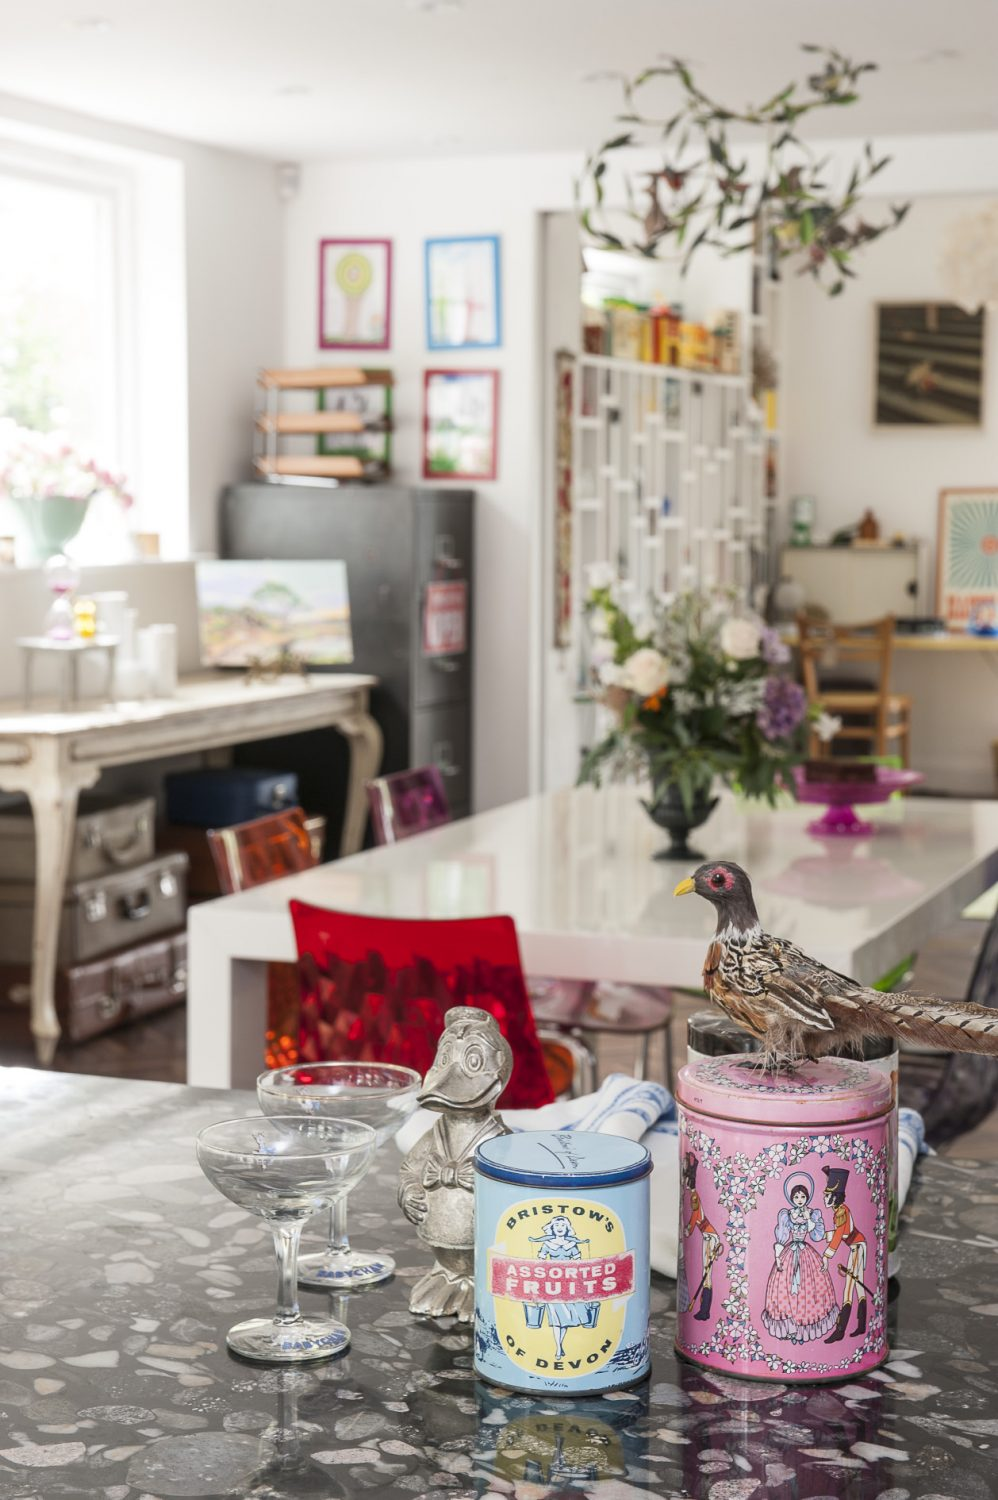 A selection of well-preserved vintage sweet and tea tins, a Donald Duck money box and Babycham glasses from the shop are grouped together on the kitchen counter